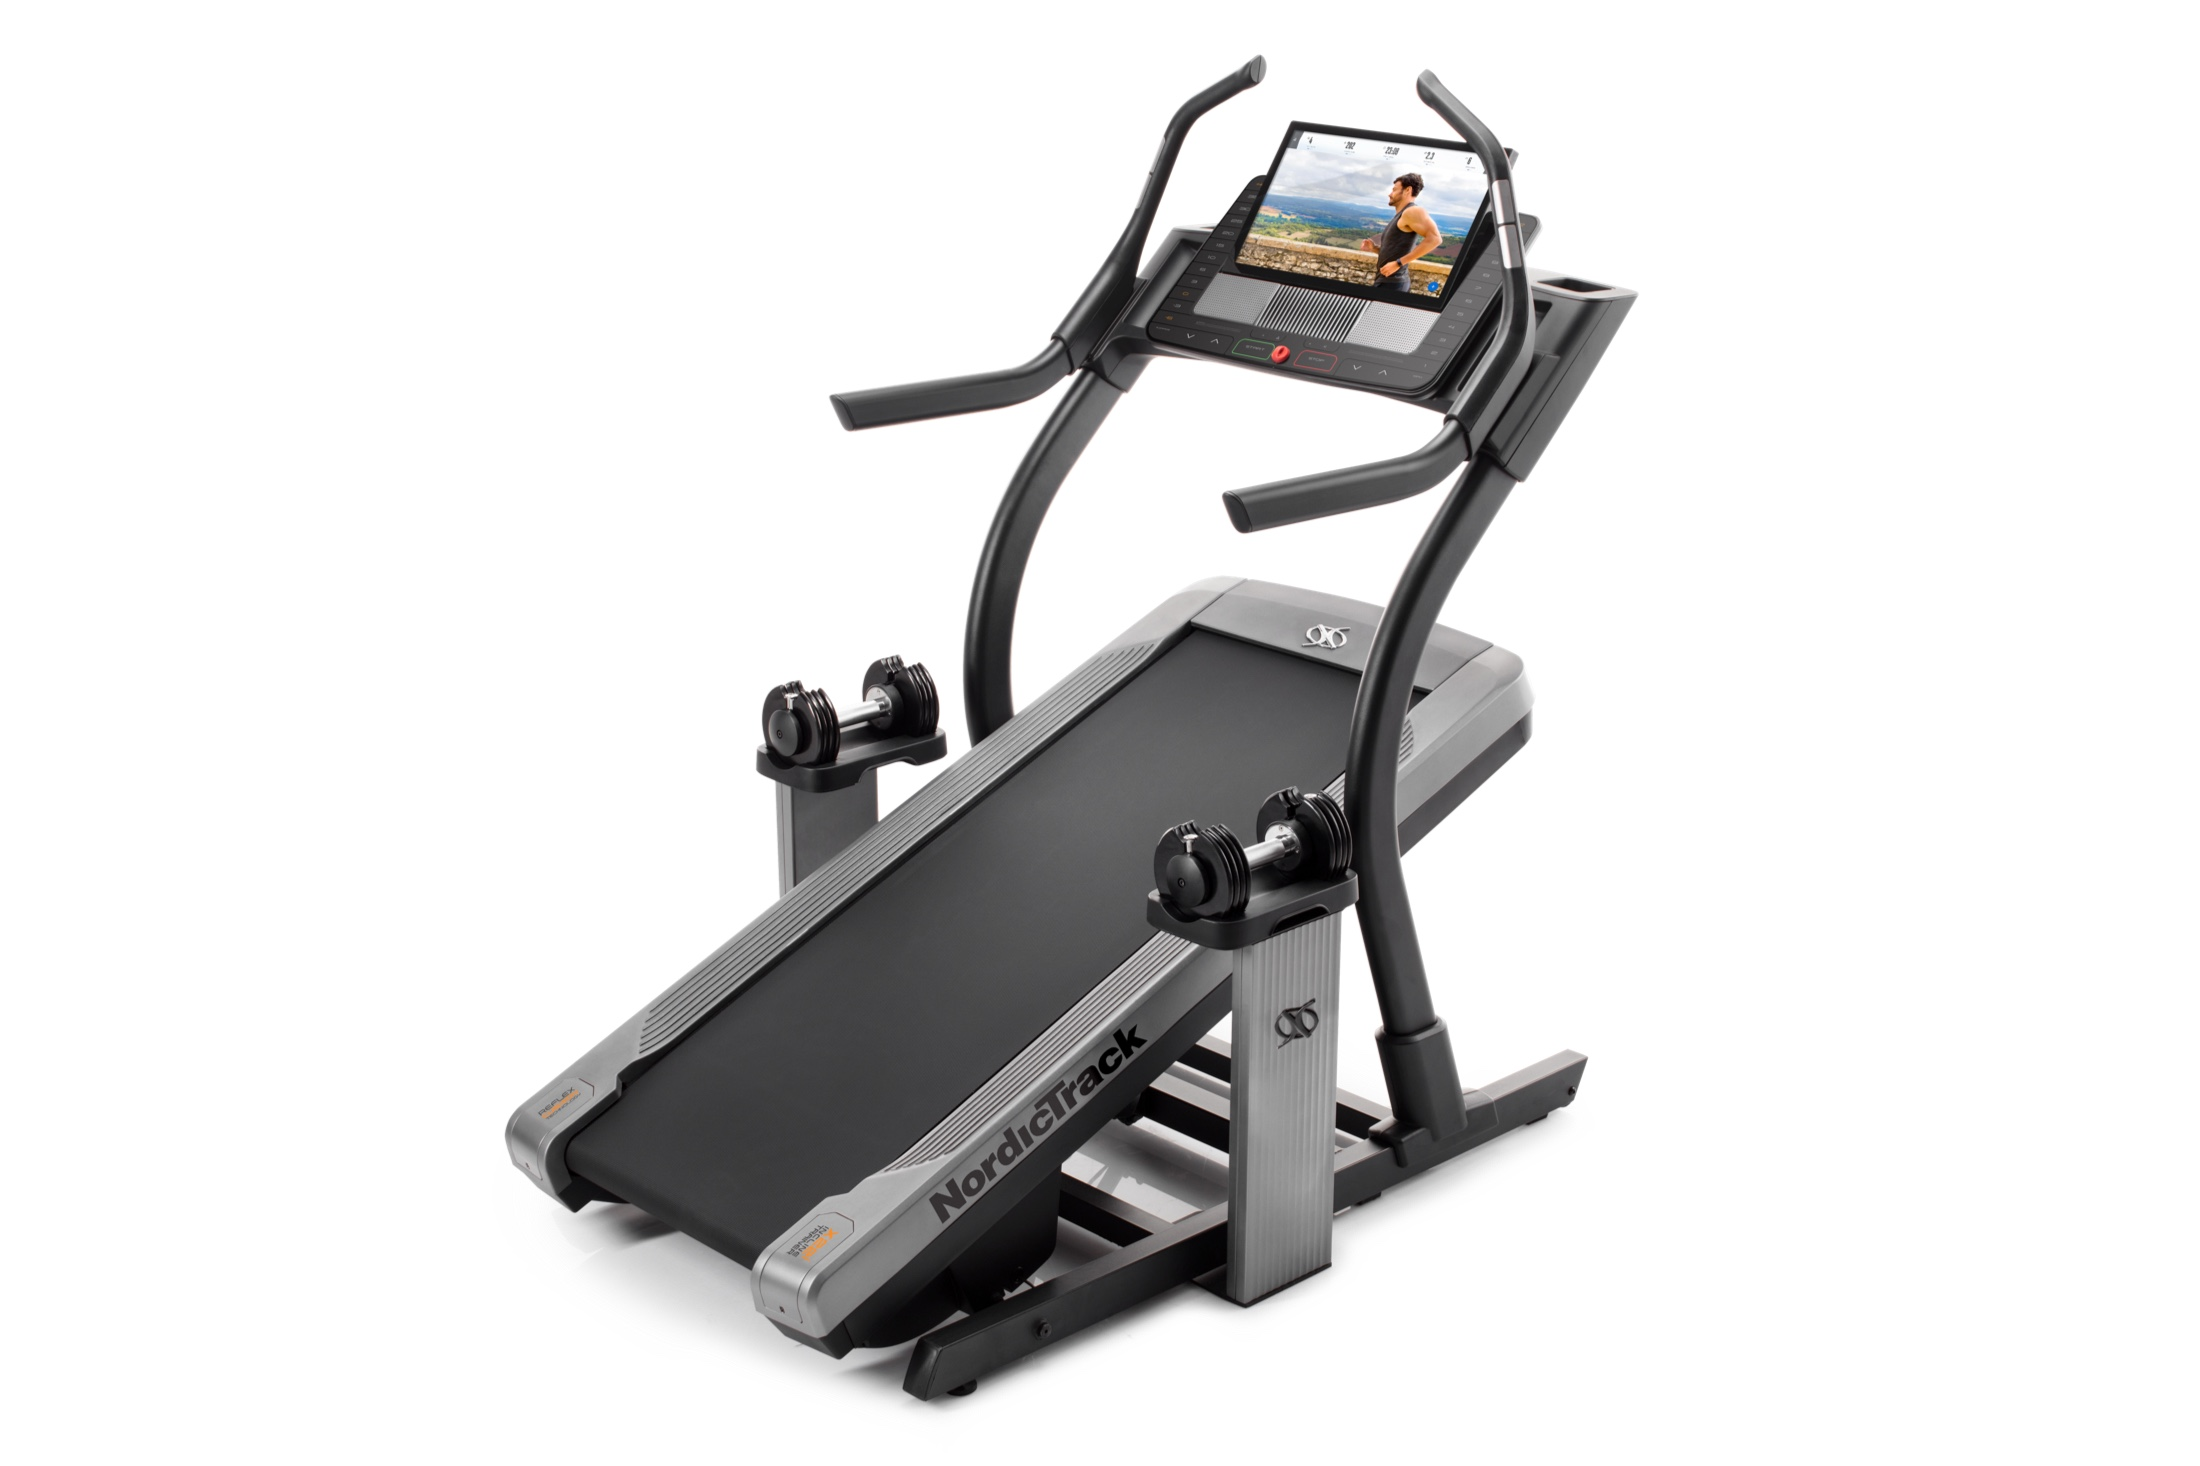 Nordictrack x22i incline trainer treadmill nordictrack nordictrack x22i incline trainer gallery image 1 asfbconference2016 Images